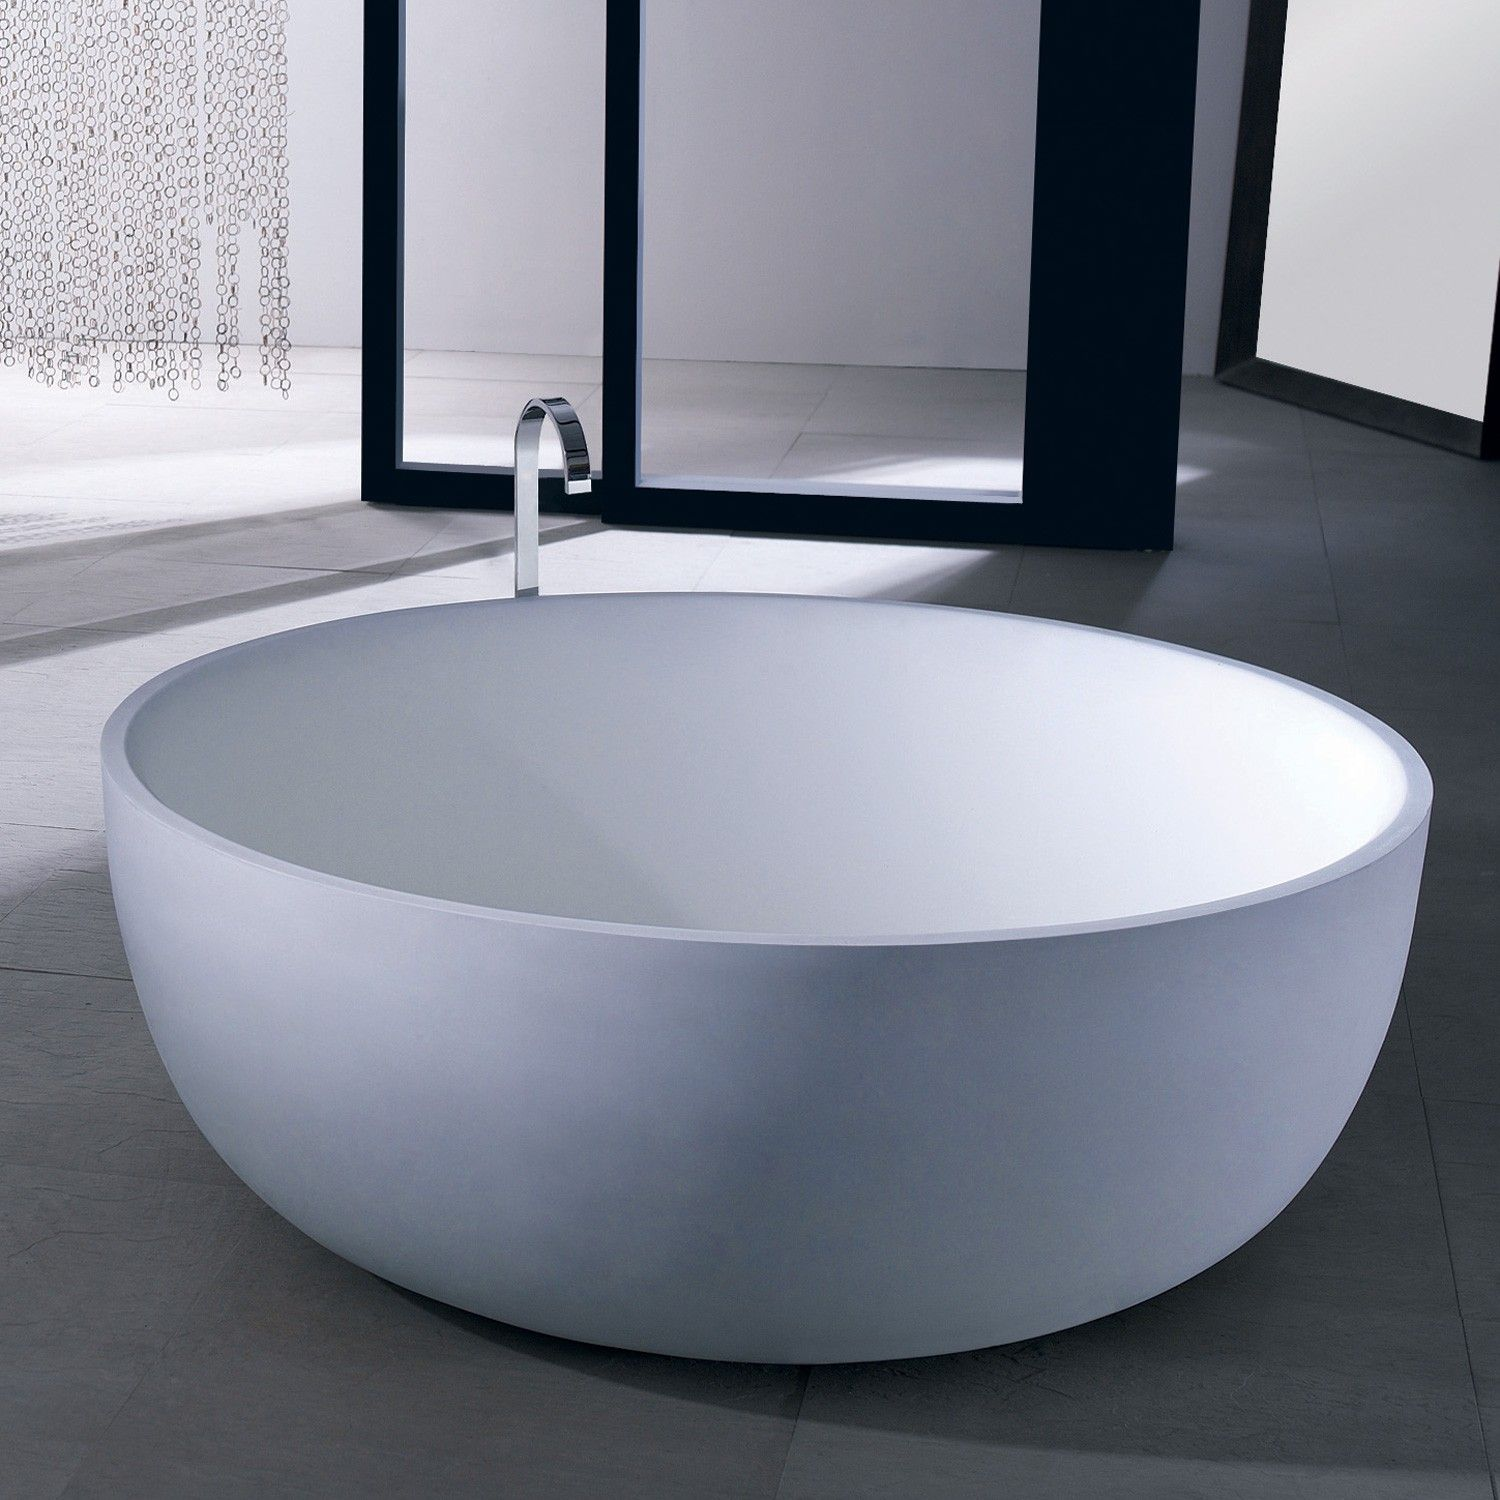 Round Free Standing Tub | Home design ideas